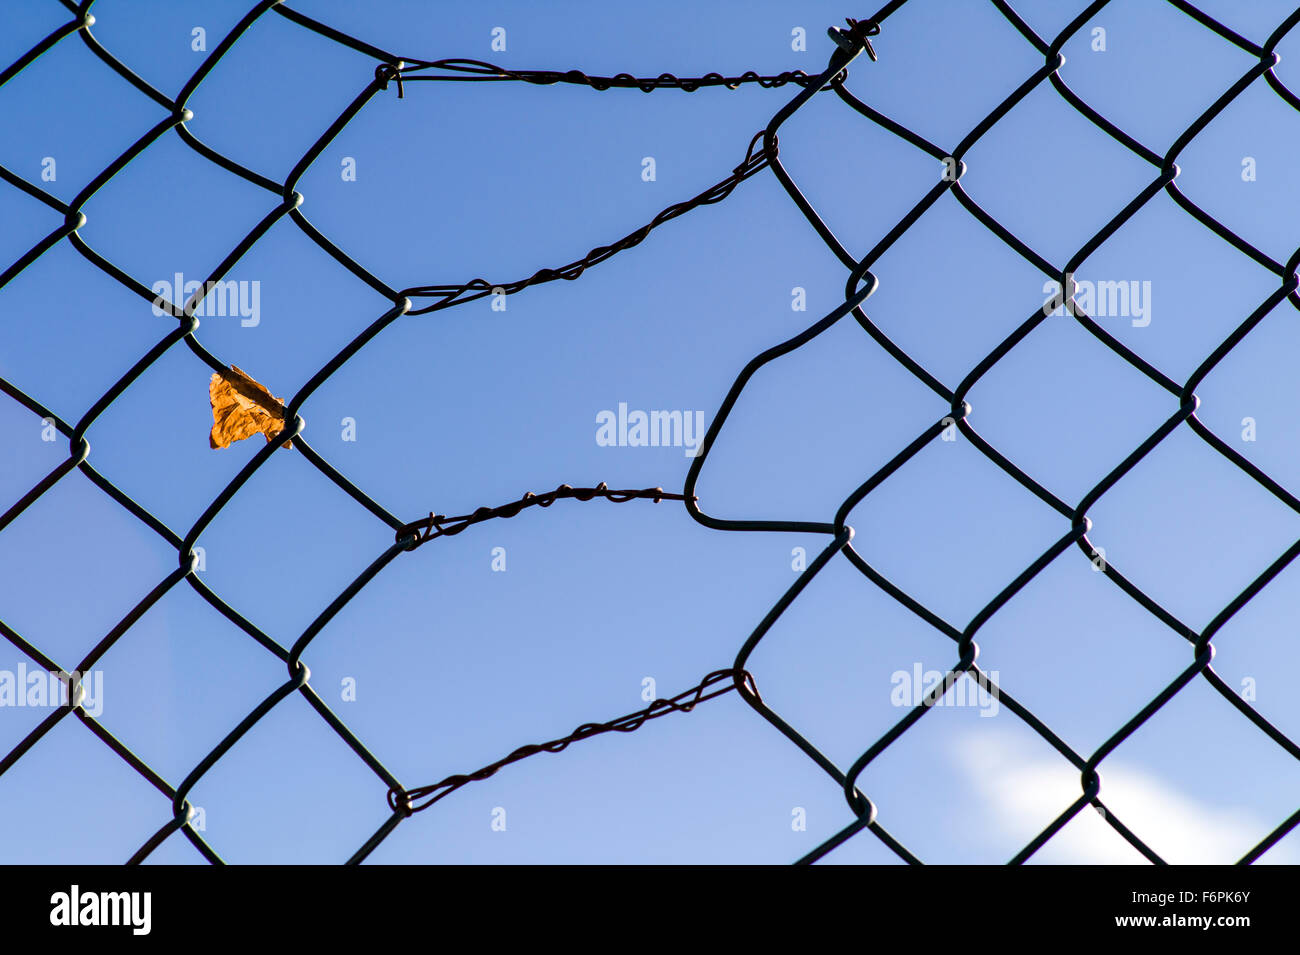 Diamond Mesh Fence Stock Photos & Diamond Mesh Fence Stock Images